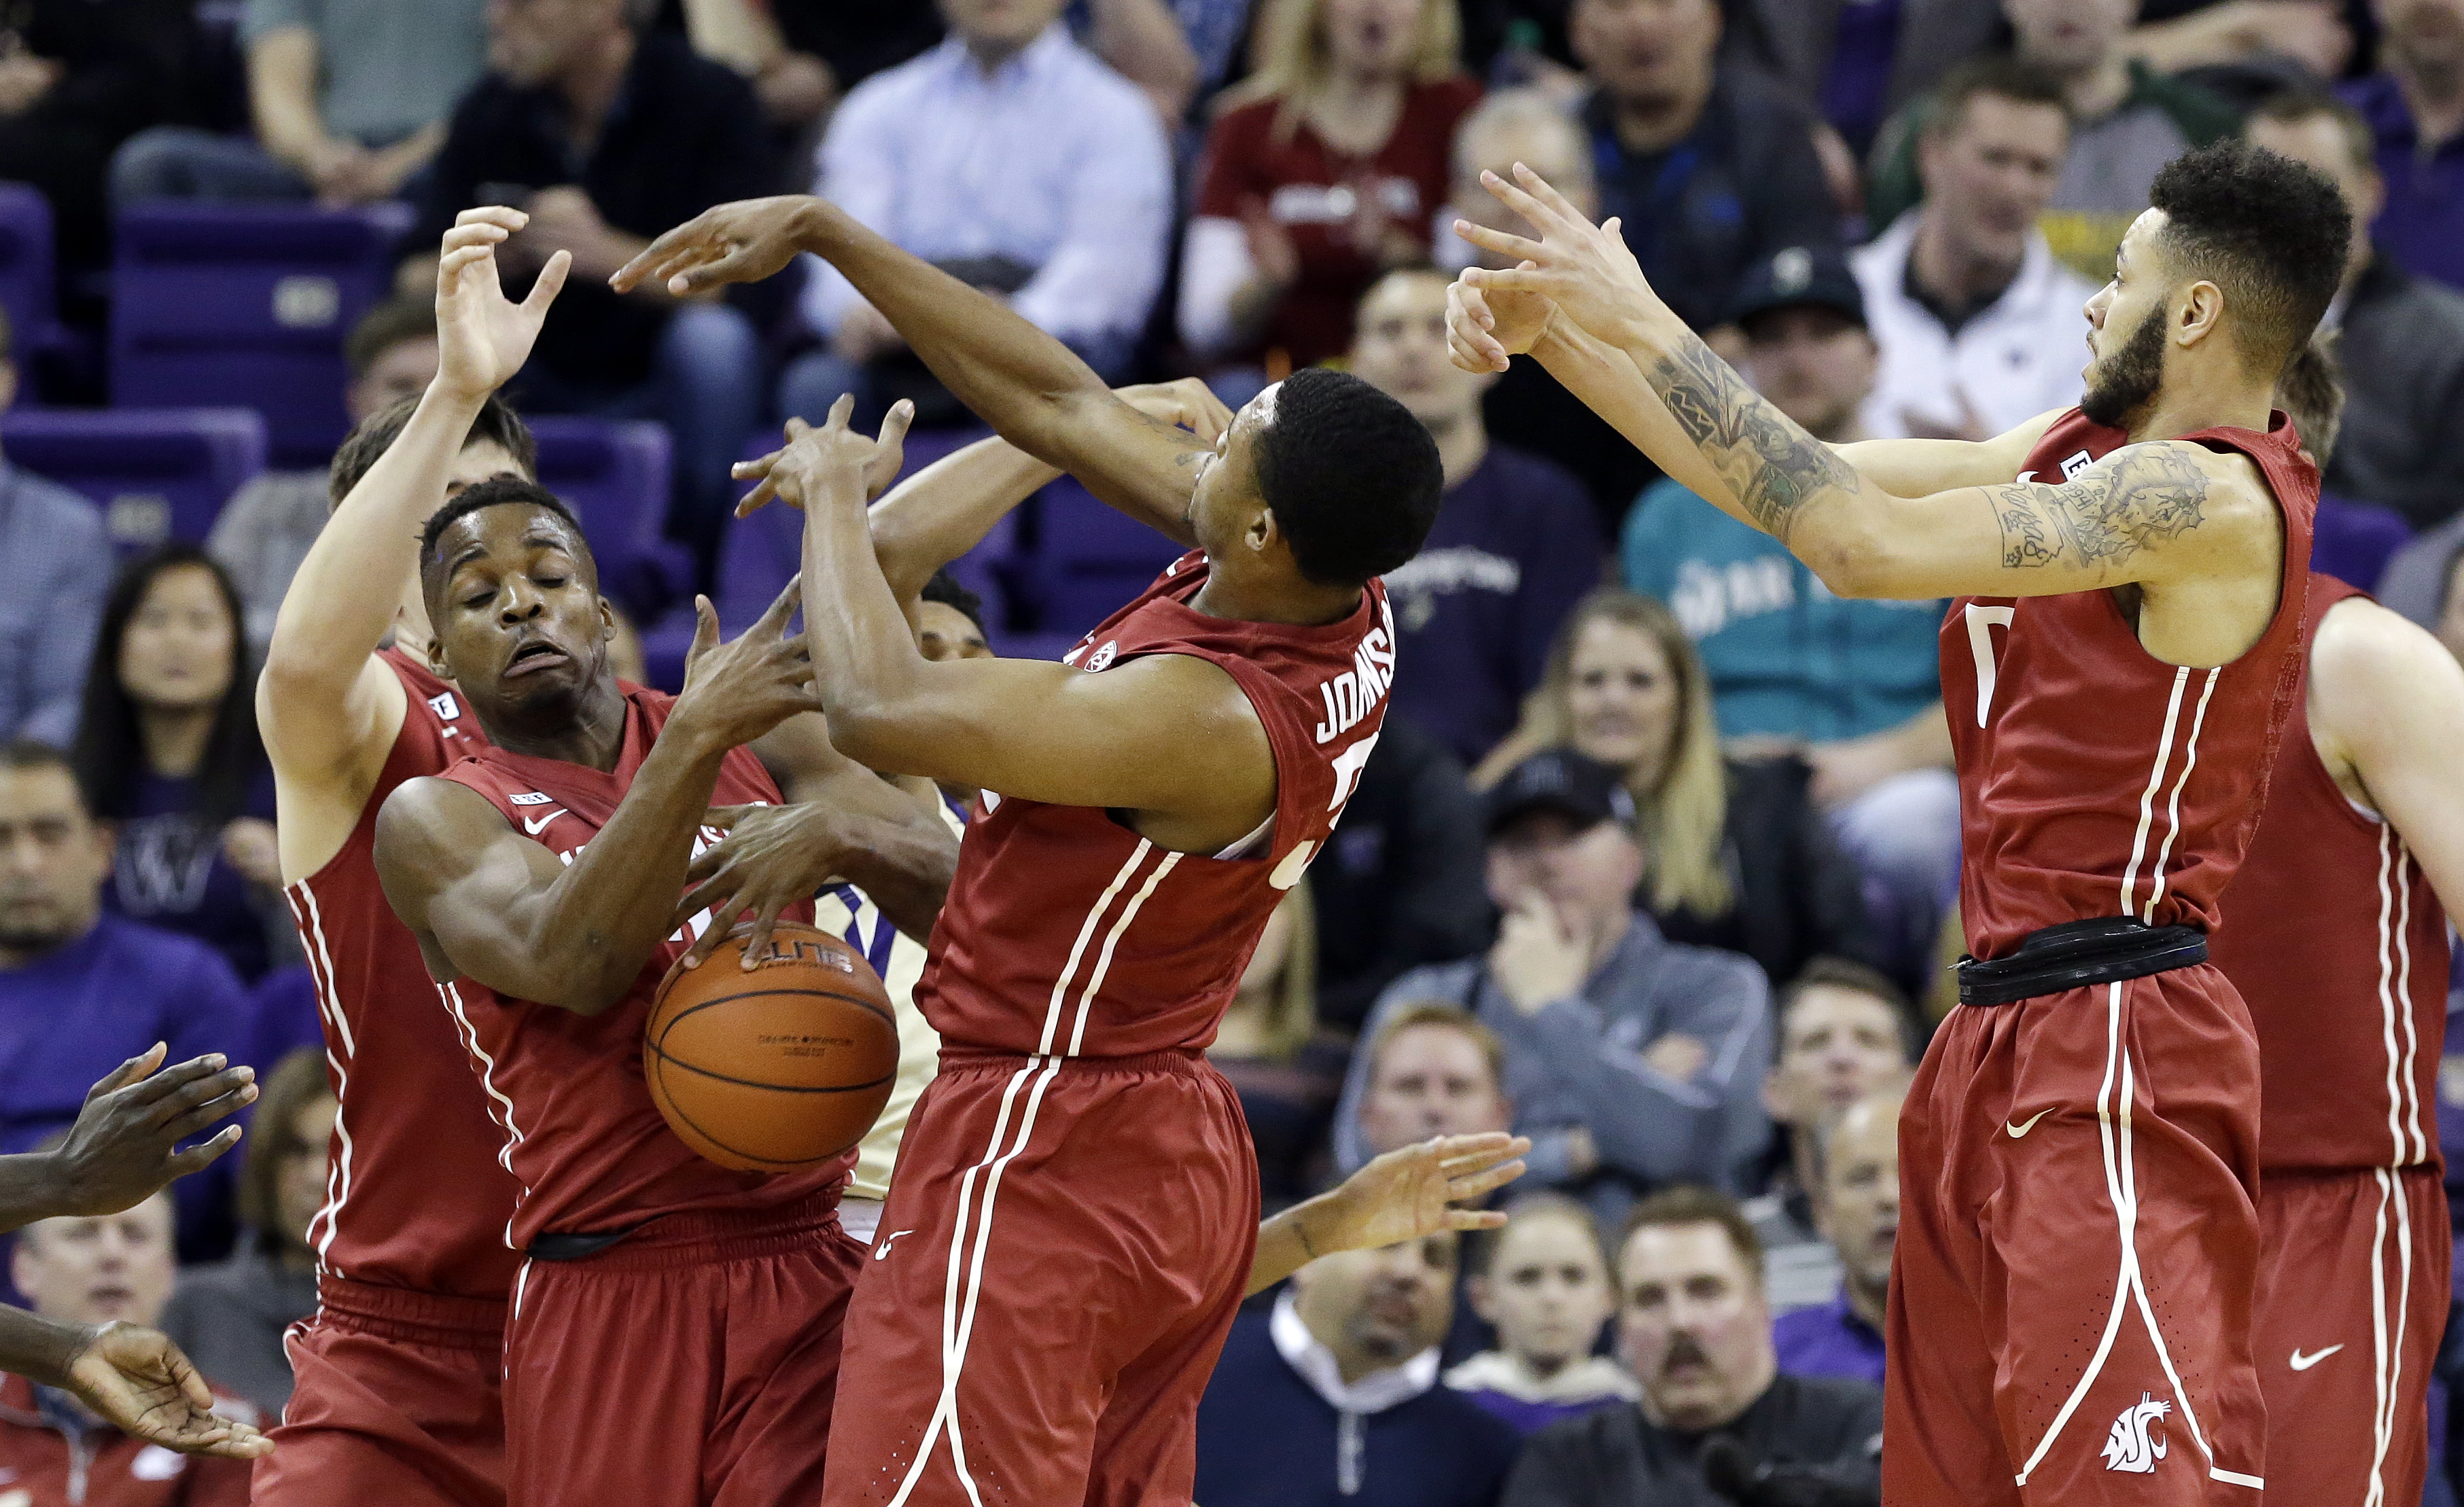 Washington State's Conor Clifford, left, Ike Iroegbu, Que Johnson and Derrien King all reach for a loose ball during the first half of an NCAA college basketball game against Washington on Wednesday, March 2, 2016, in Seattle. (AP Photo/Elaine Thompson)